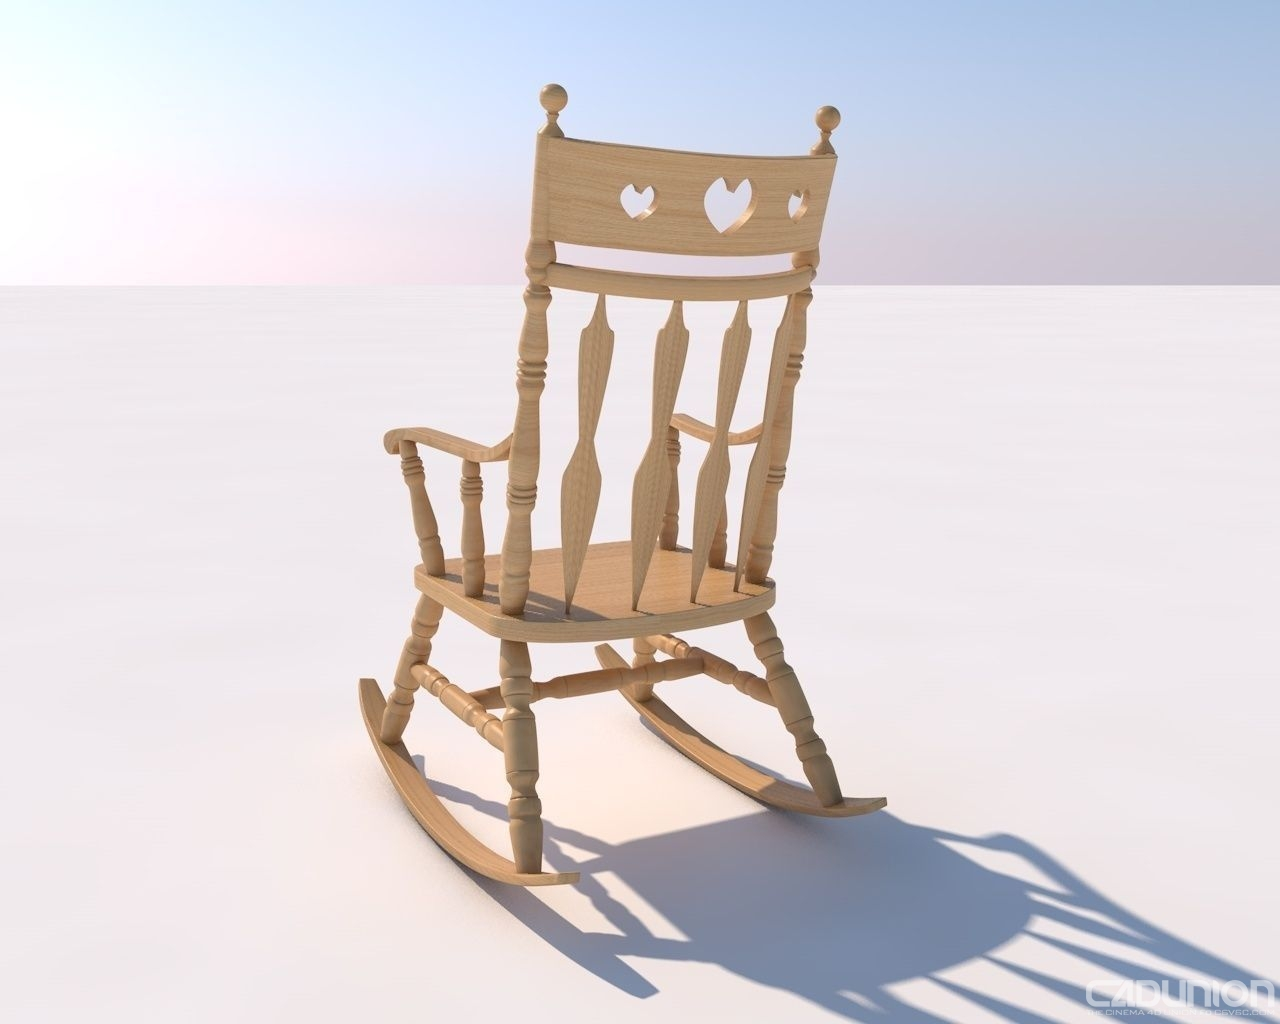 rocking-chair-3d-model-fbx-c4d-dae-1.jpg